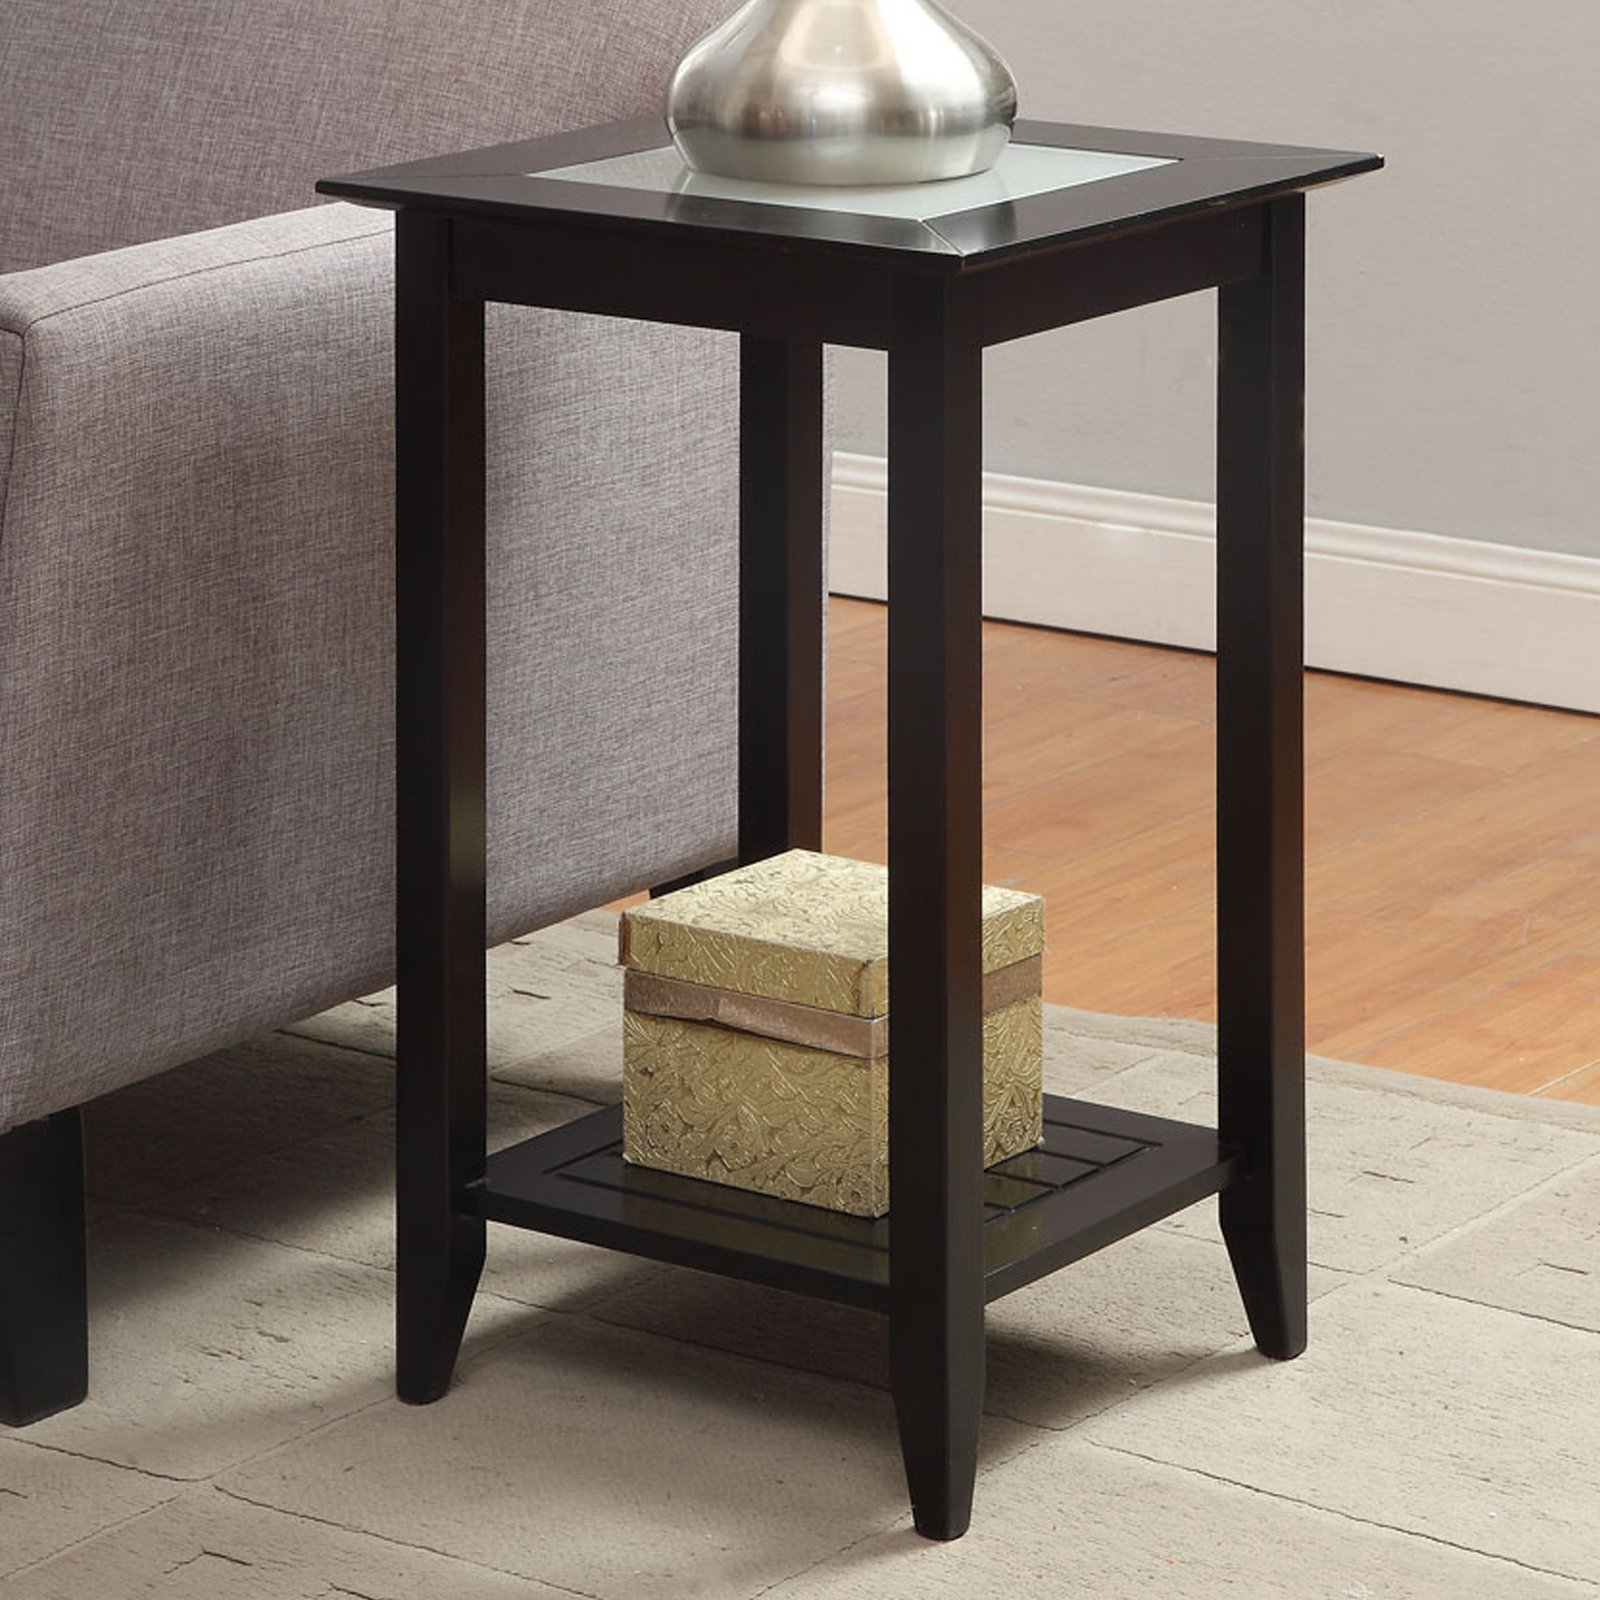 Convenience Concepts Carmel Square Wood and Glass End Table with